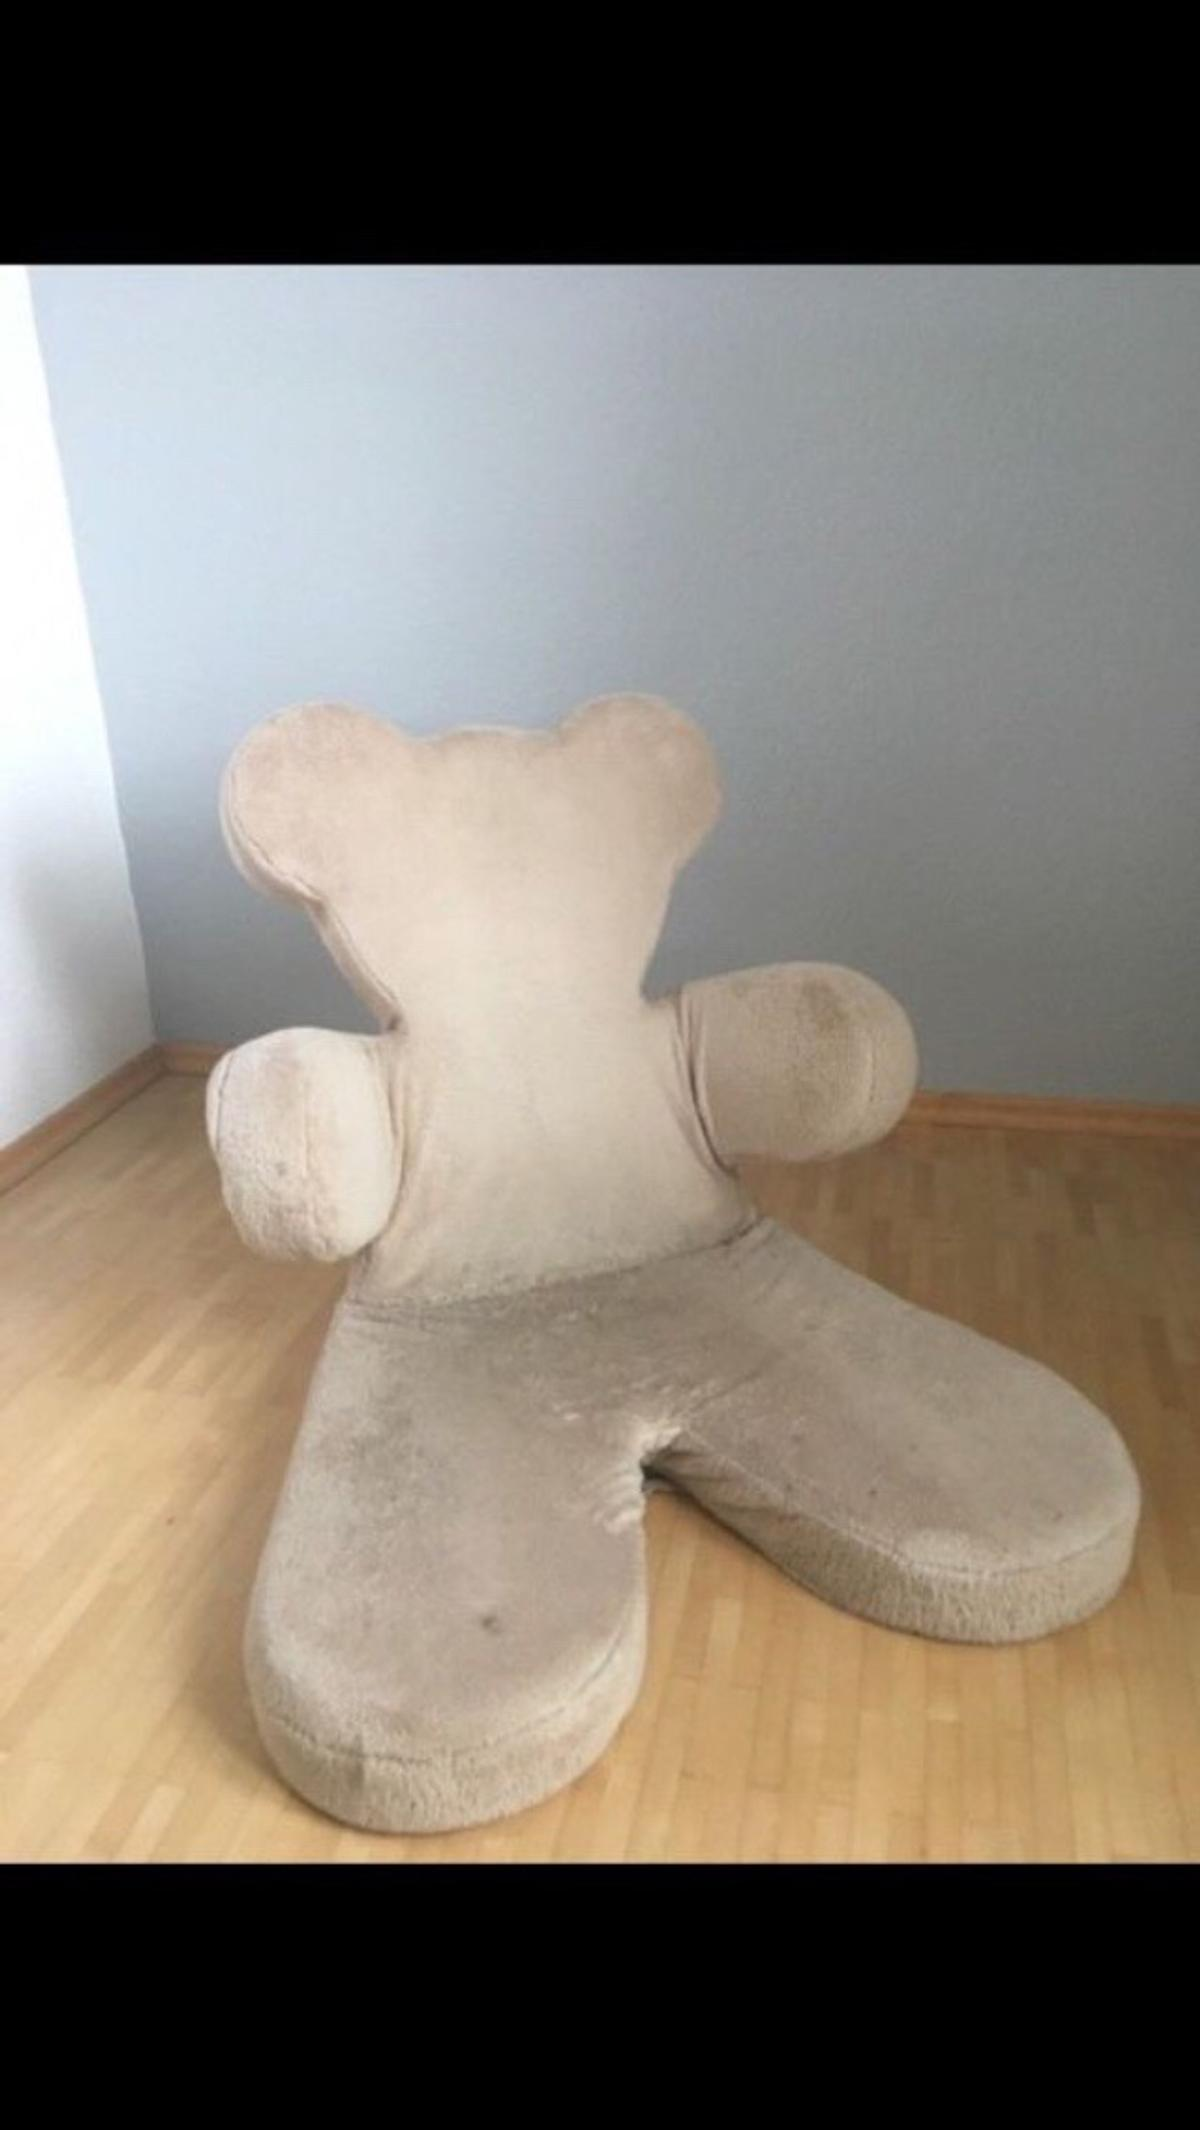 Ikea Teddy Sessel In 63075 Offenbach Am Main For 20 00 For